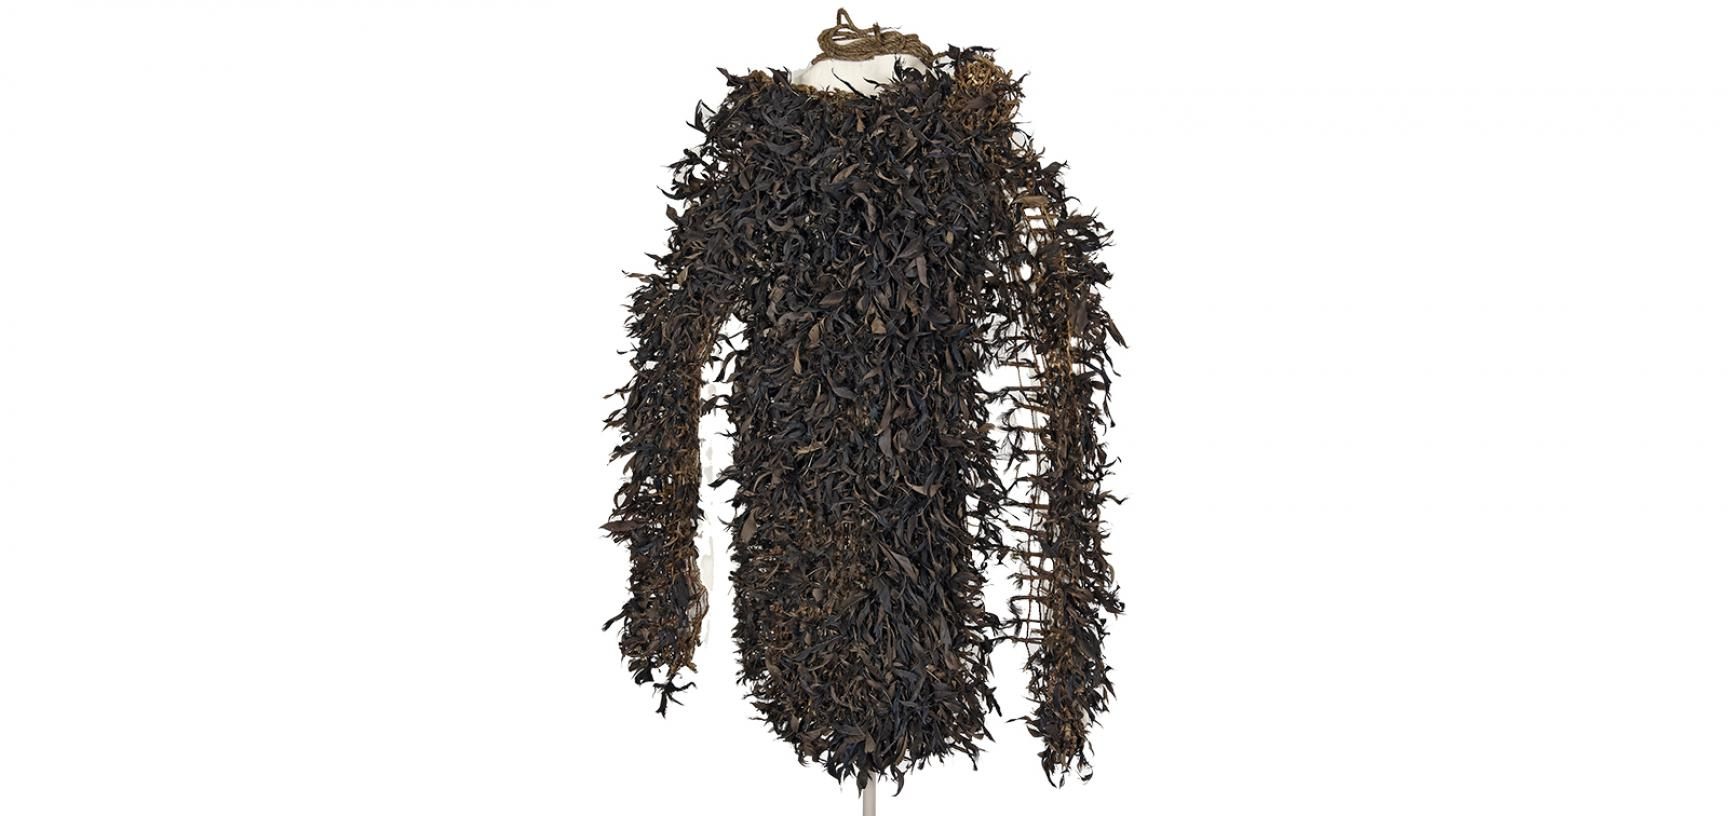 The feather cloak of the mourner's costume (1886.1.1637.4)